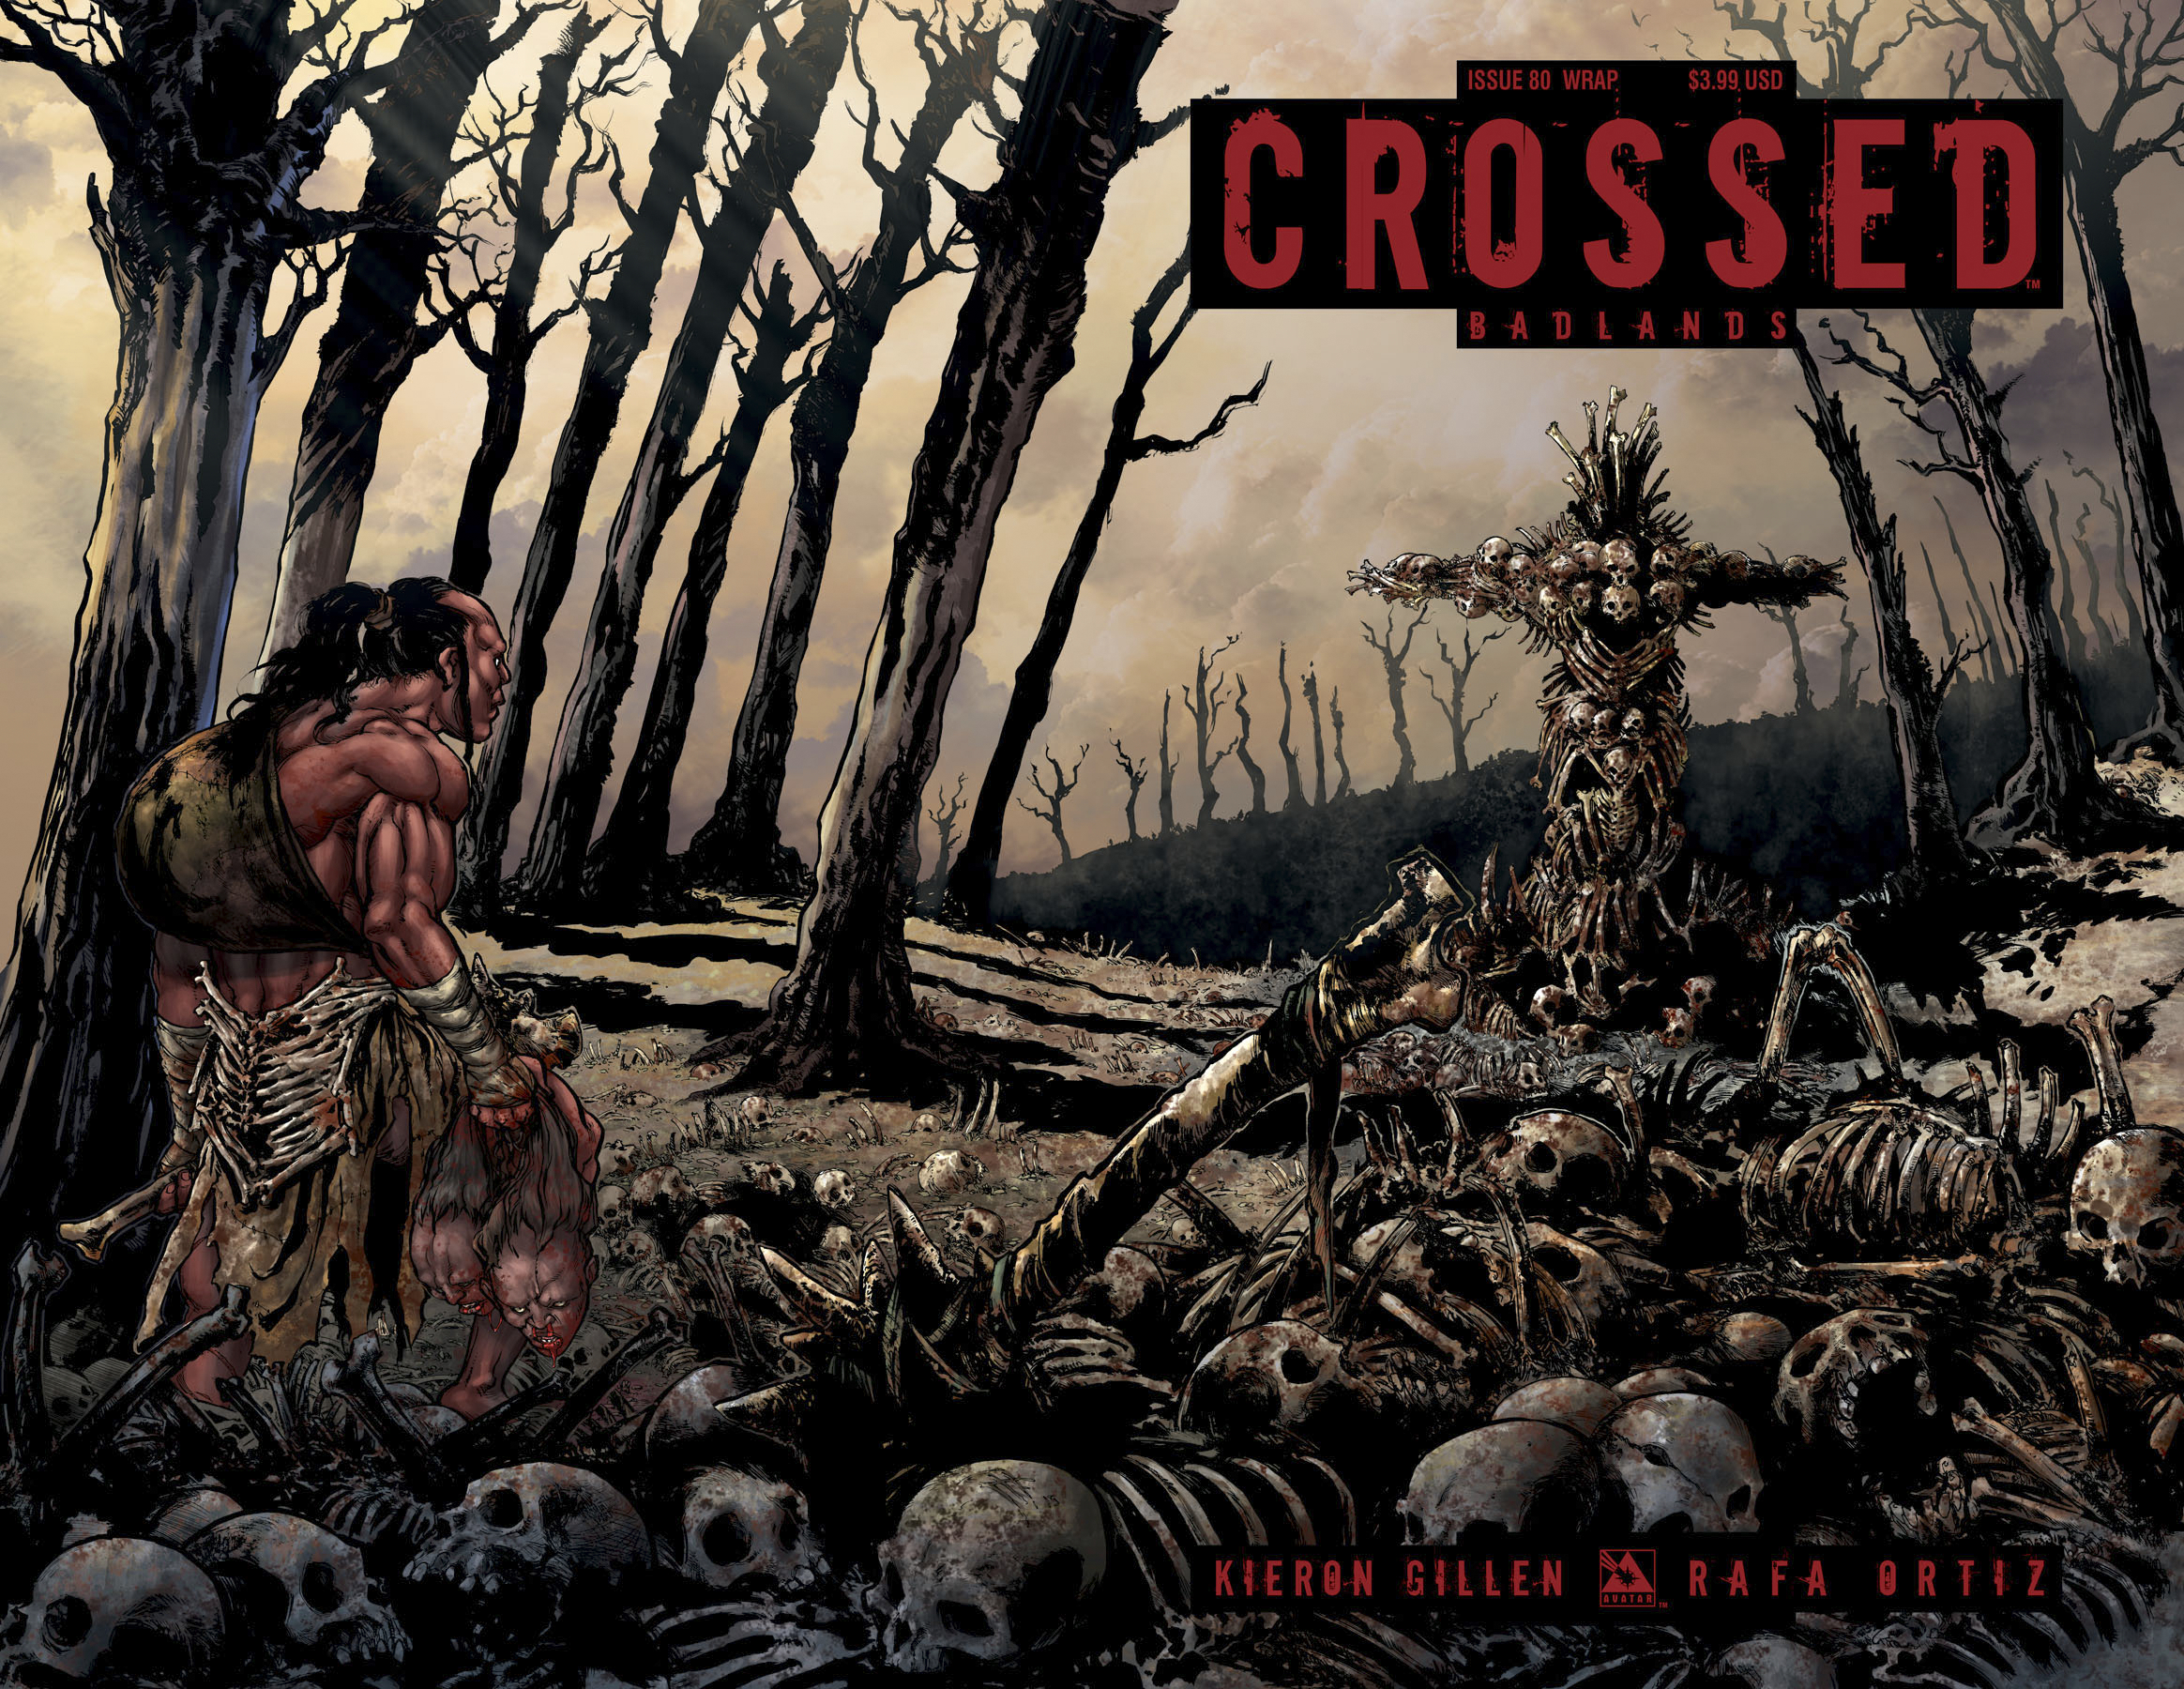 CROSSED BADLANDS #80 WRAP CVR (MR)